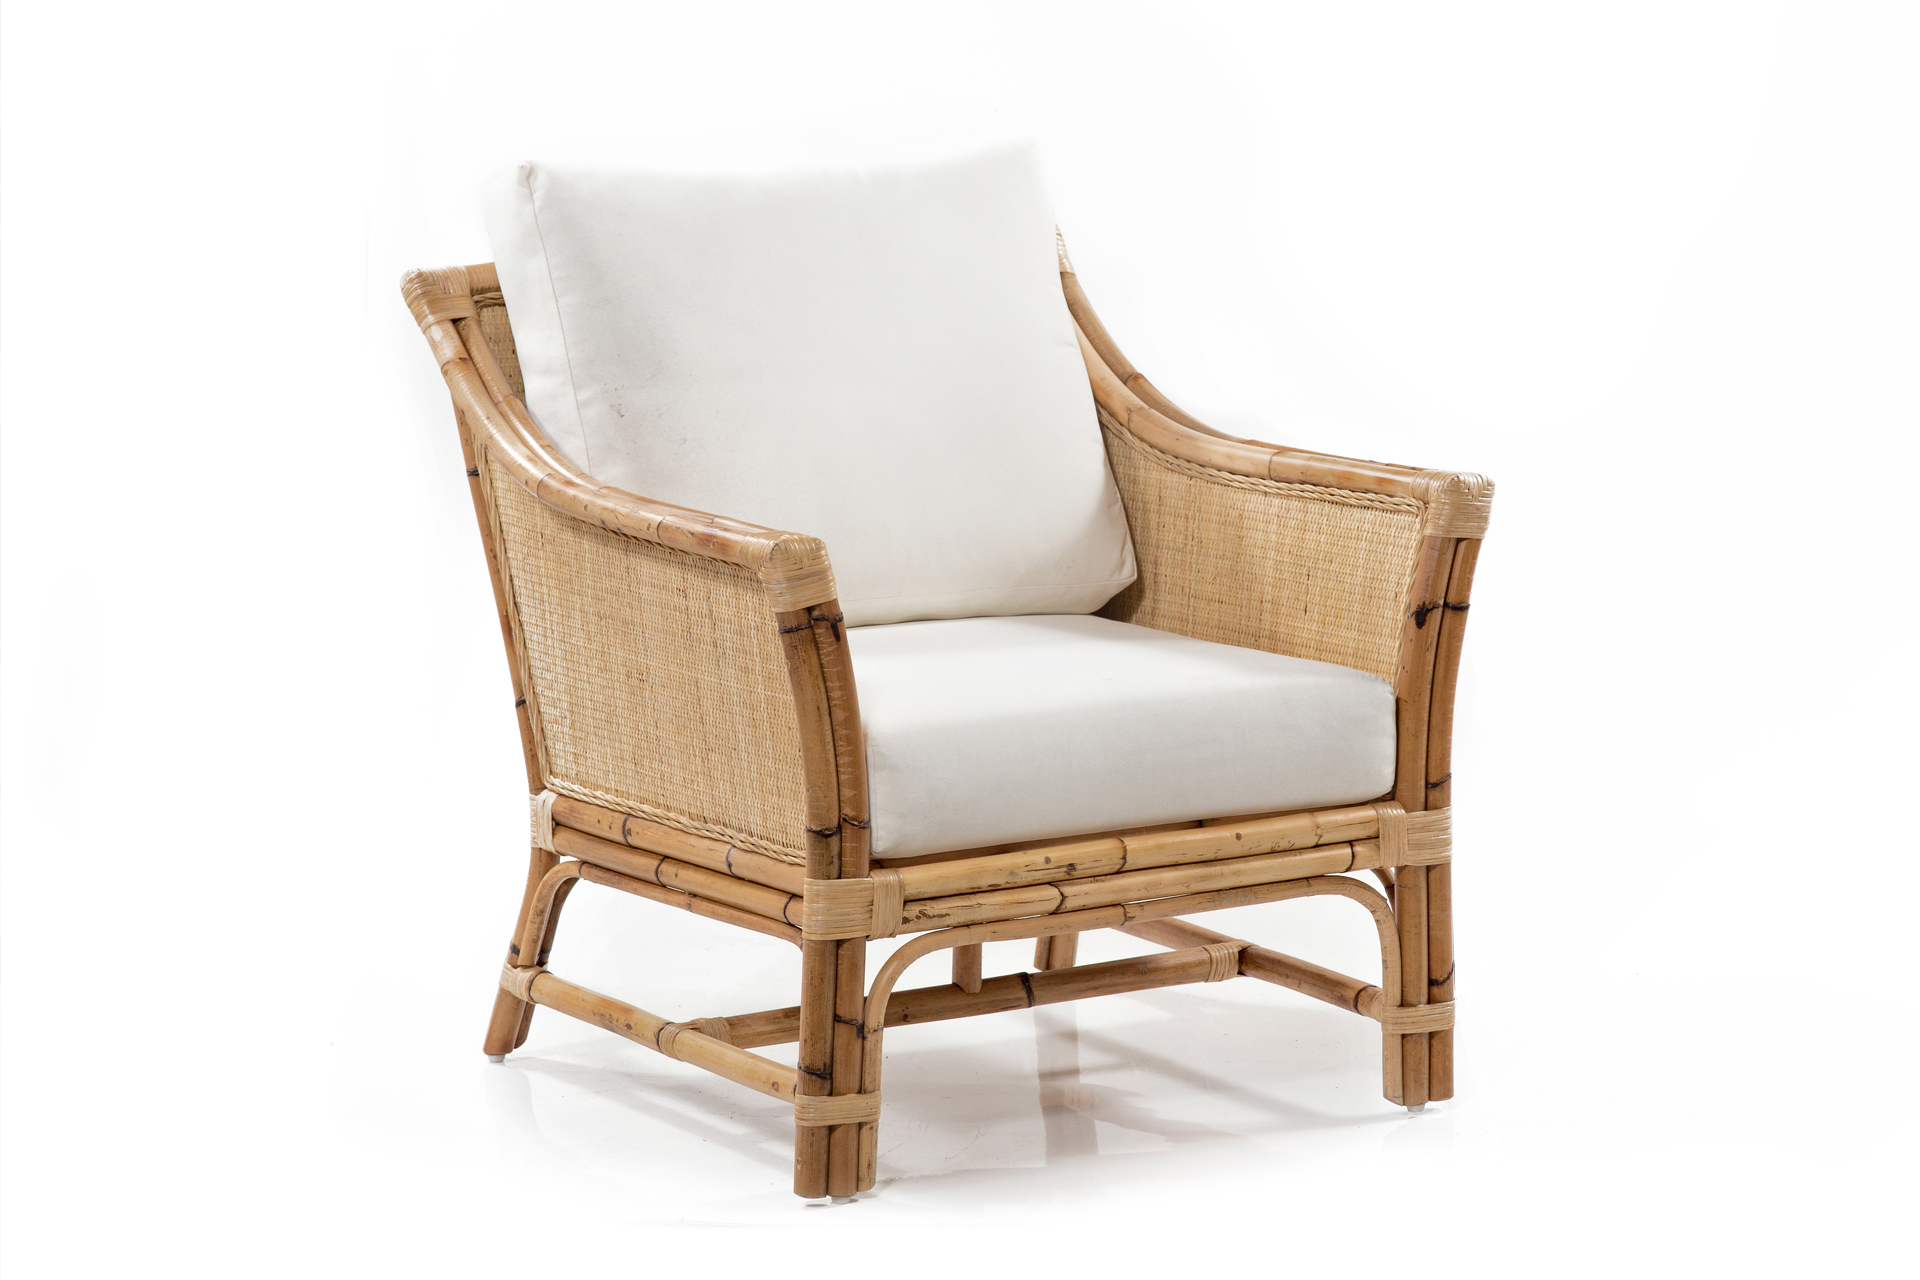 Hartford woven armchair | Rattan Commercial Furniture Supplier